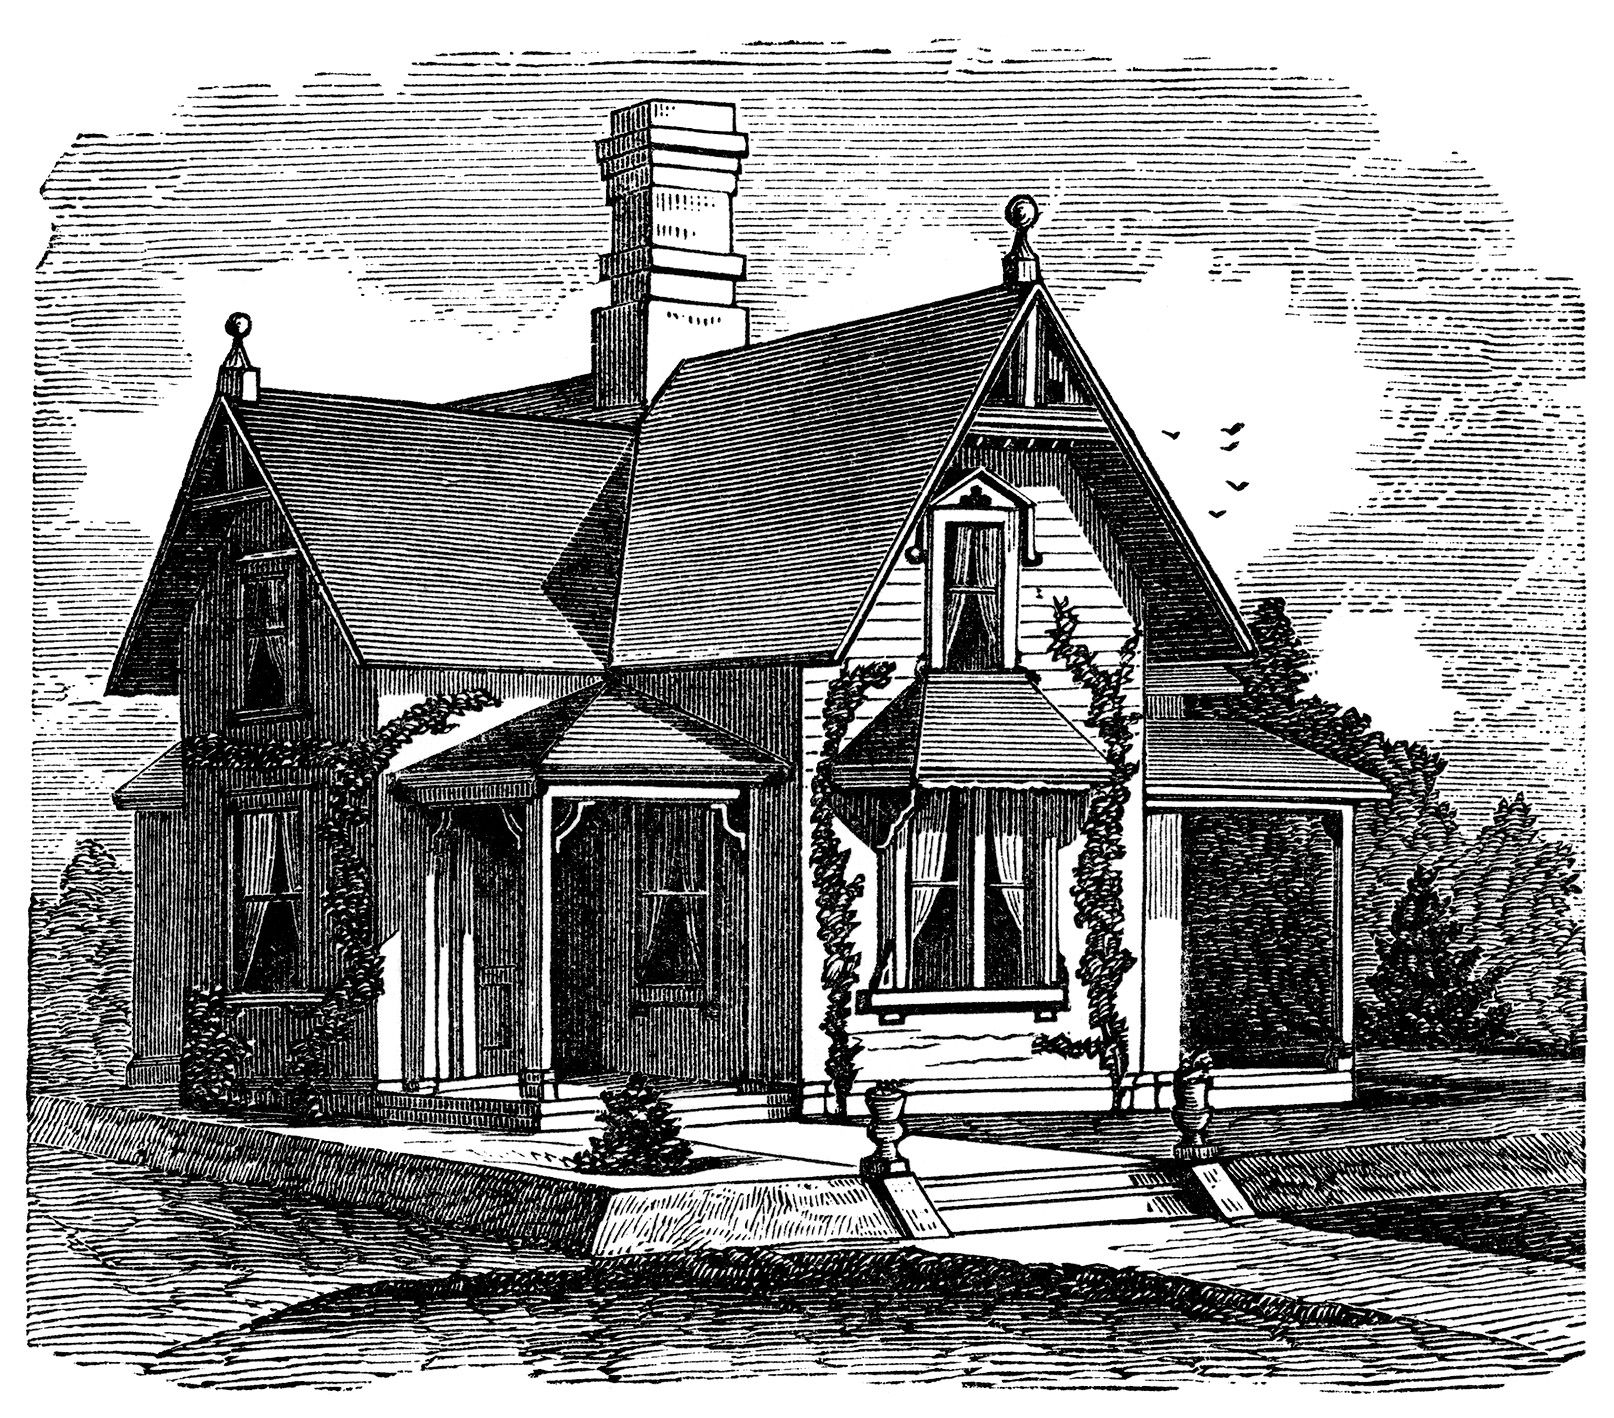 black and white clipart, Victorian cottage image.